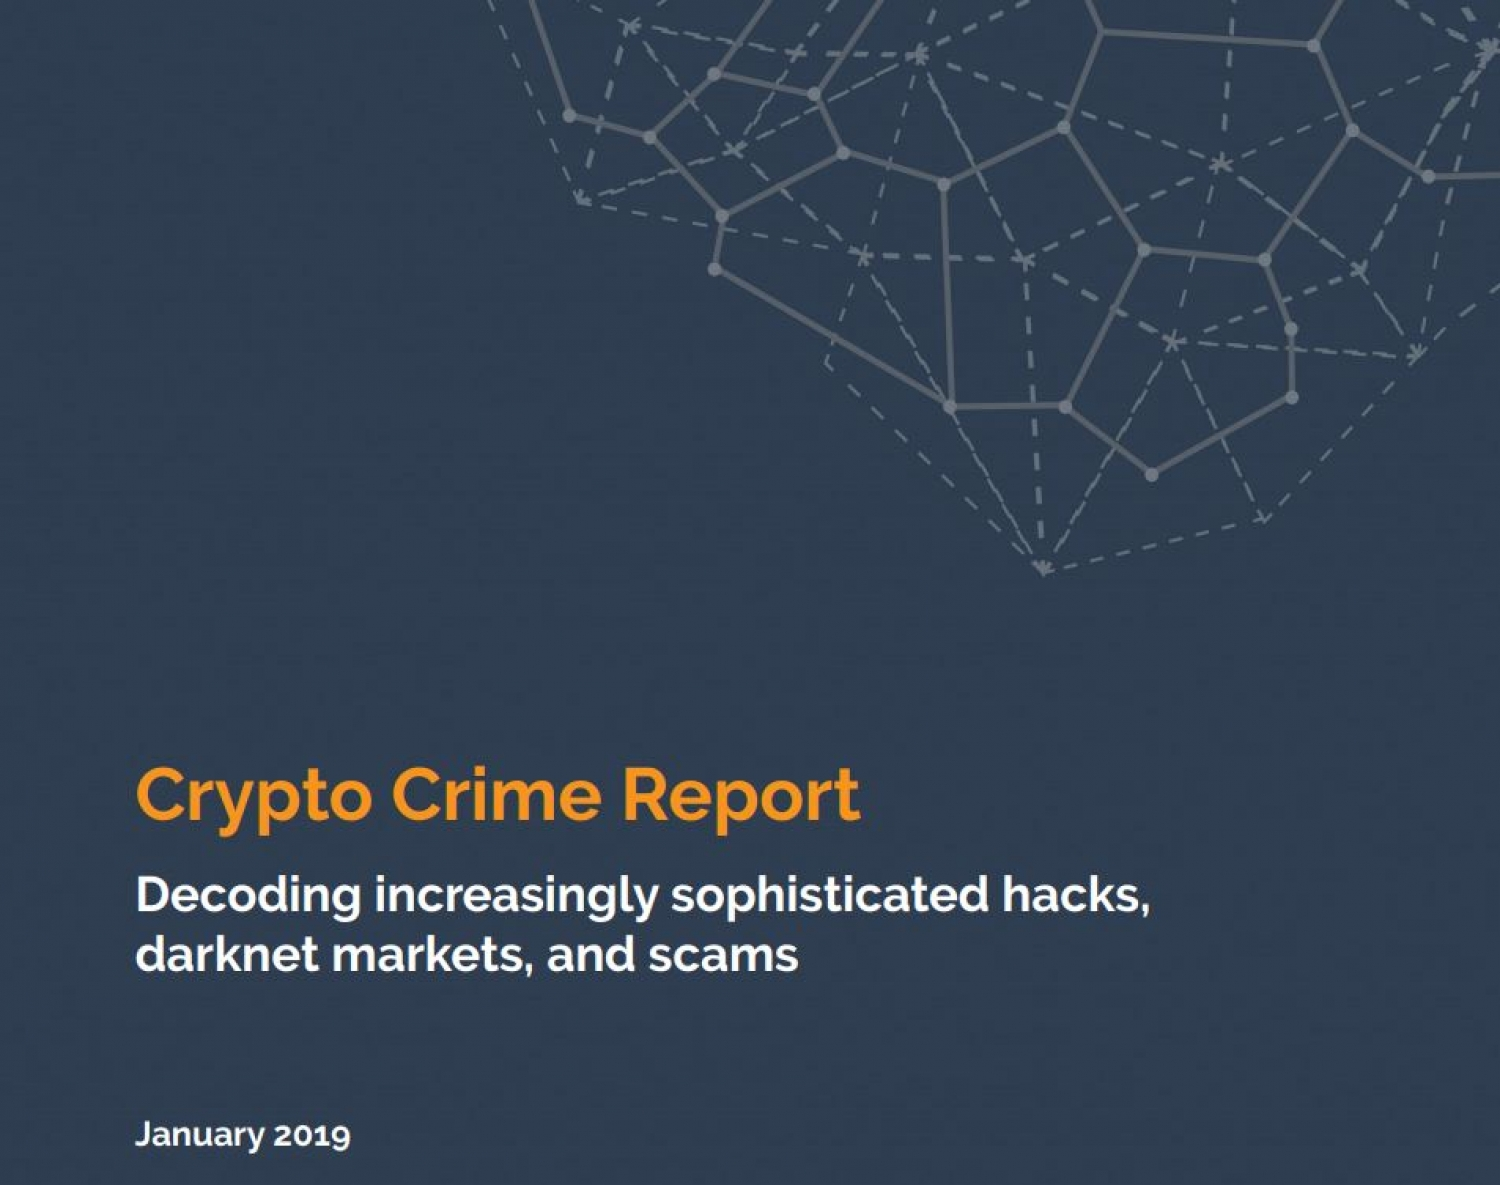 CRYPTO CRIME REPORT: DECODING HACKS, DARKNET MARKETS, AND SCAMS